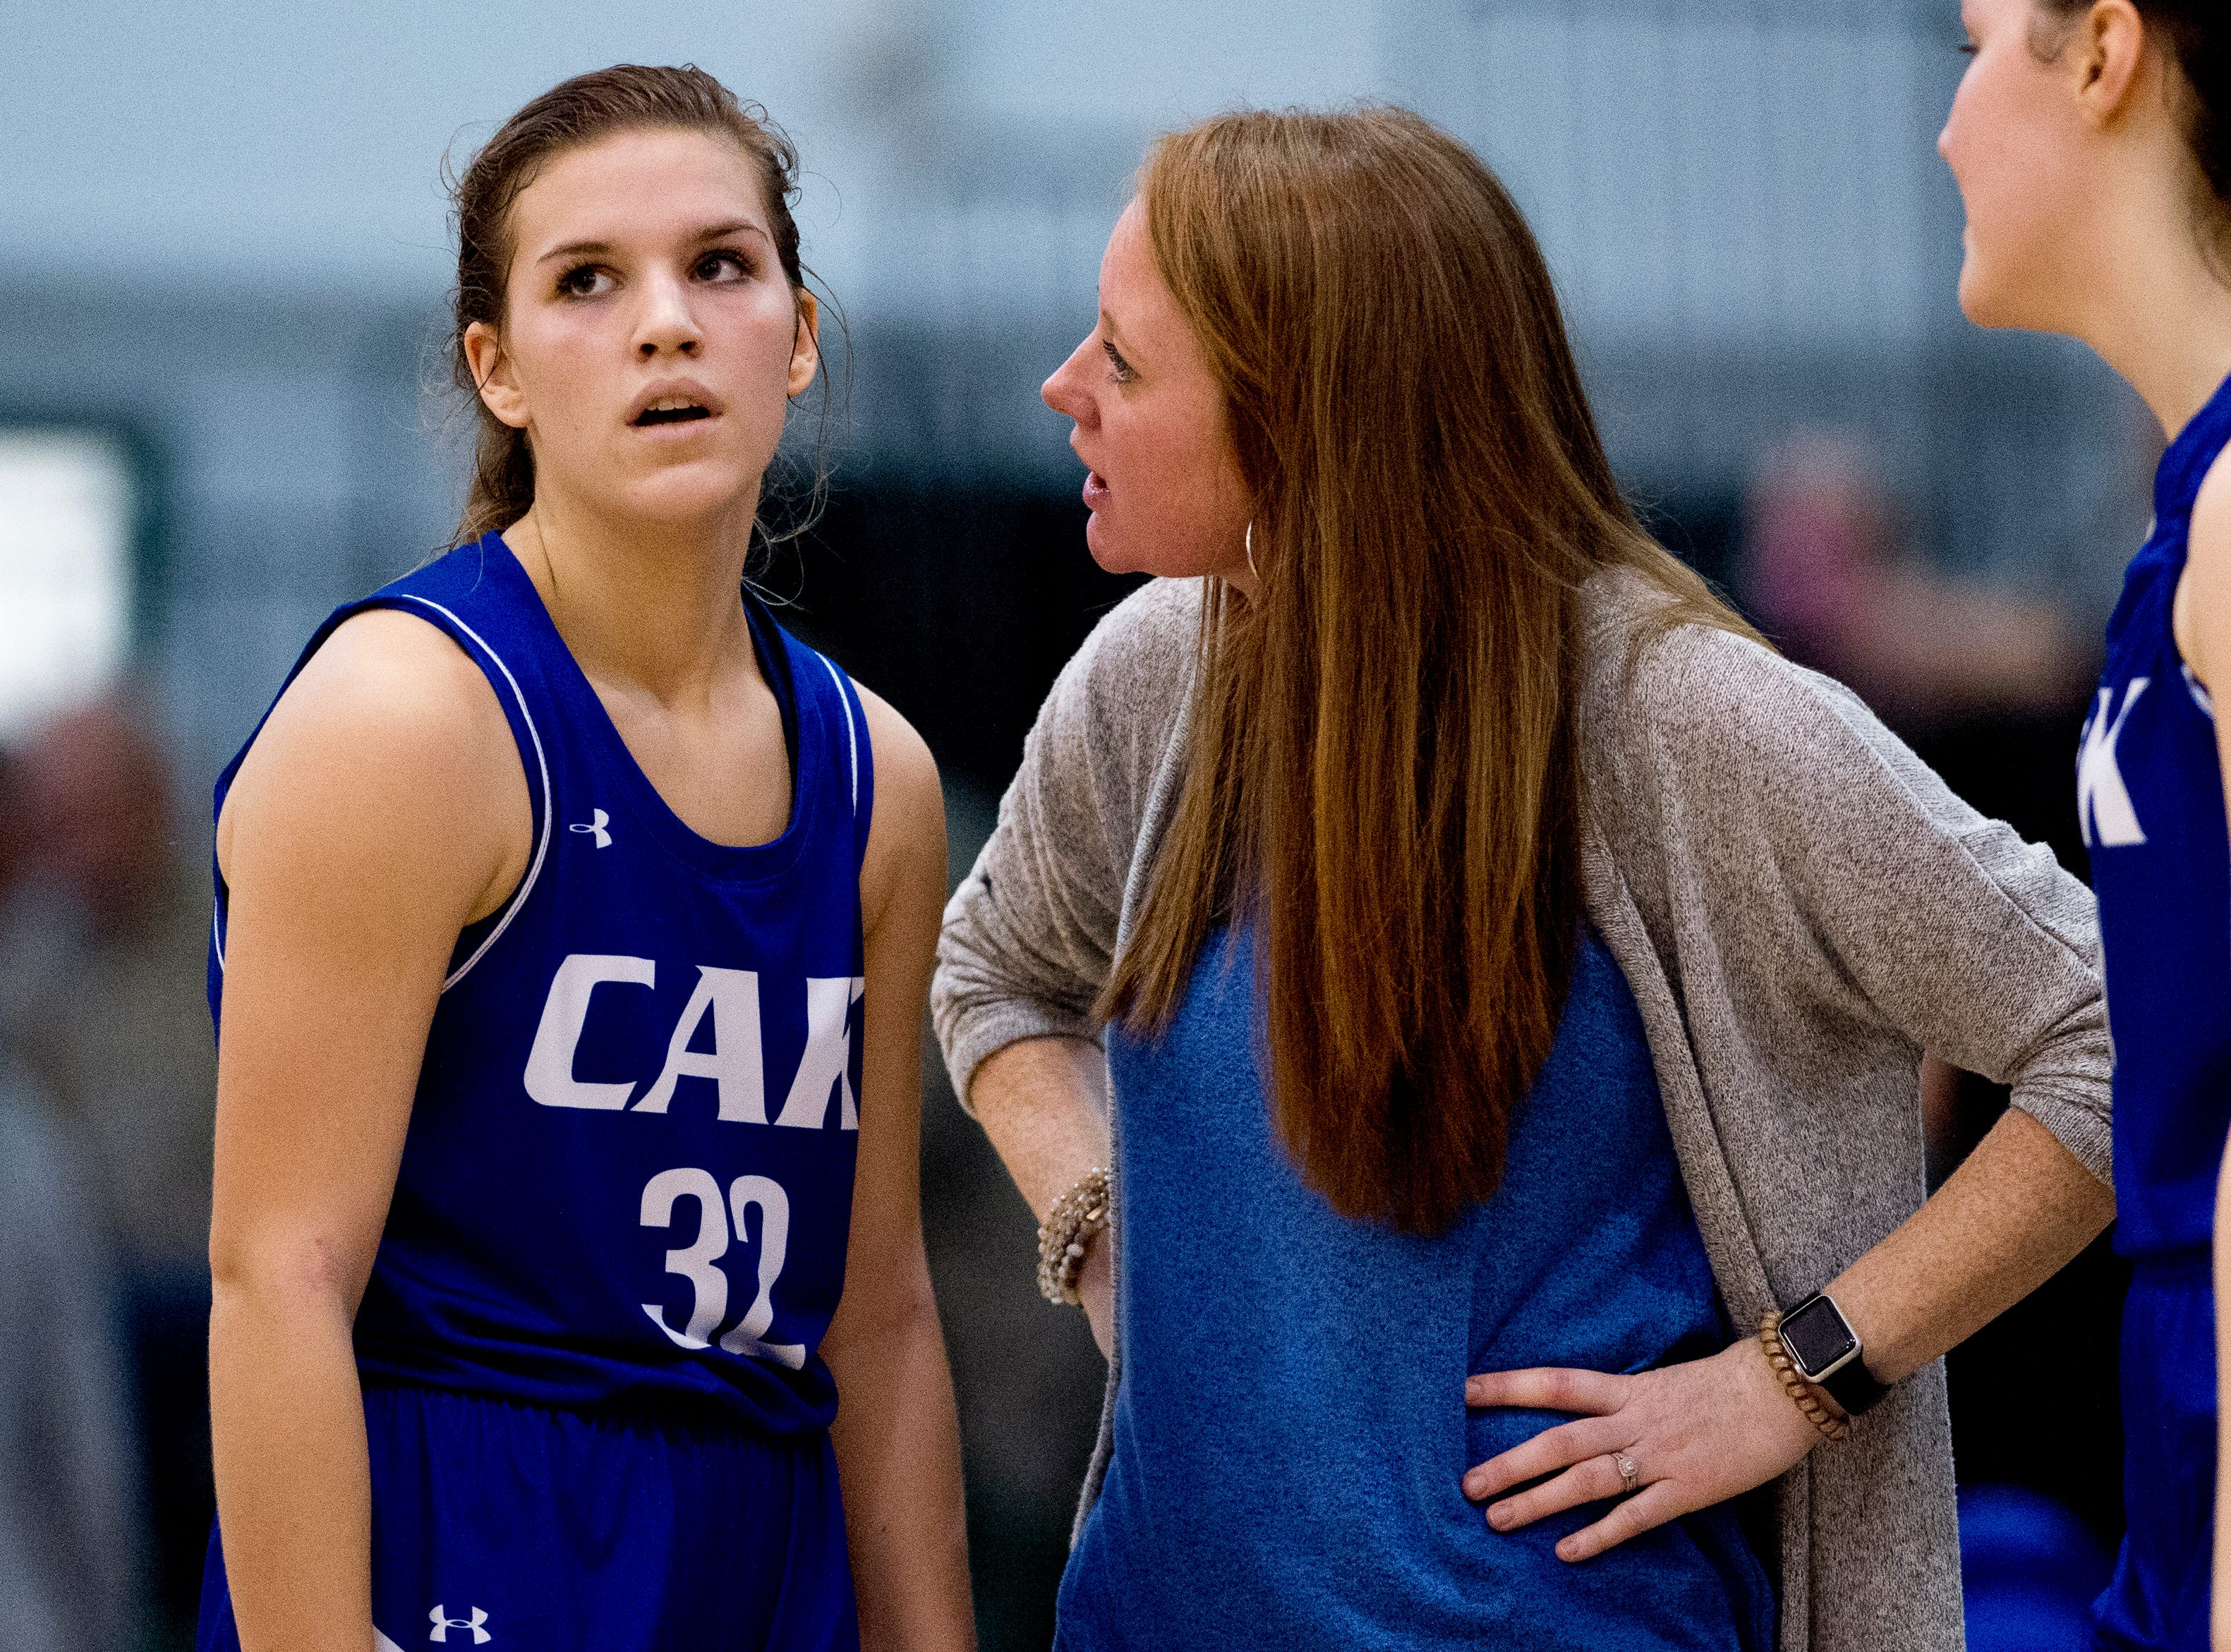 CAK's Head Abby Williams speaks with Mackenna Mozingo (32) during a semifinal game between CAK and Silverdale at Webb School of Knoxville in Knoxville, Tennessee on Friday, February 15, 2019.